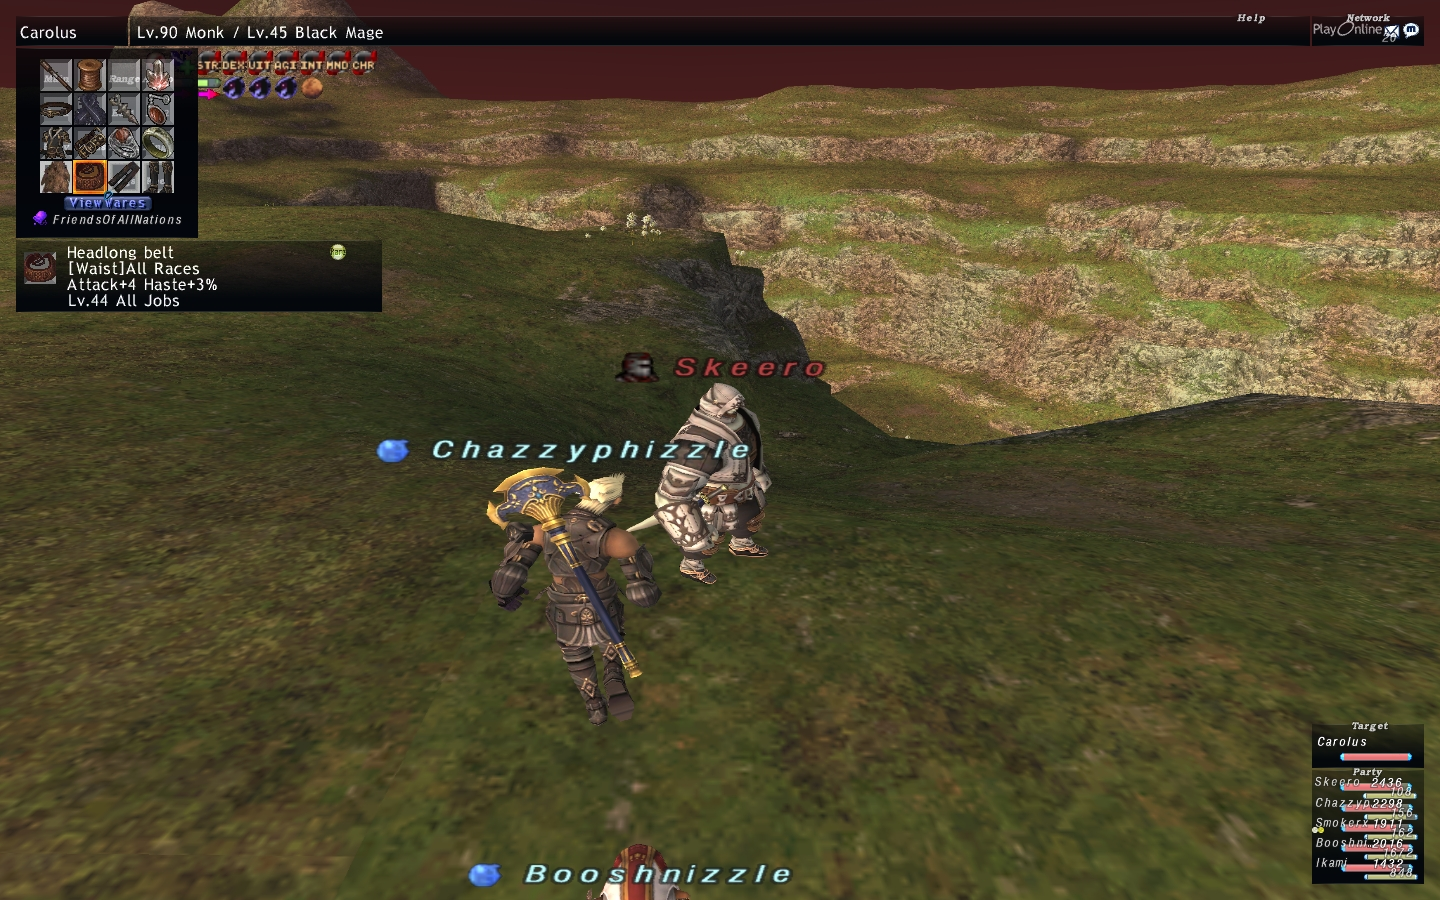 skeelo ffxi gear lv78 wear stand cares leech dolls xxii thread literally player make pics renzys gimpleeches long taking shots screen point fast killing presuming lv90s contribute mobs gonna vtit listed mooch damage contribution tier this play gimpconfusedwtf contributions